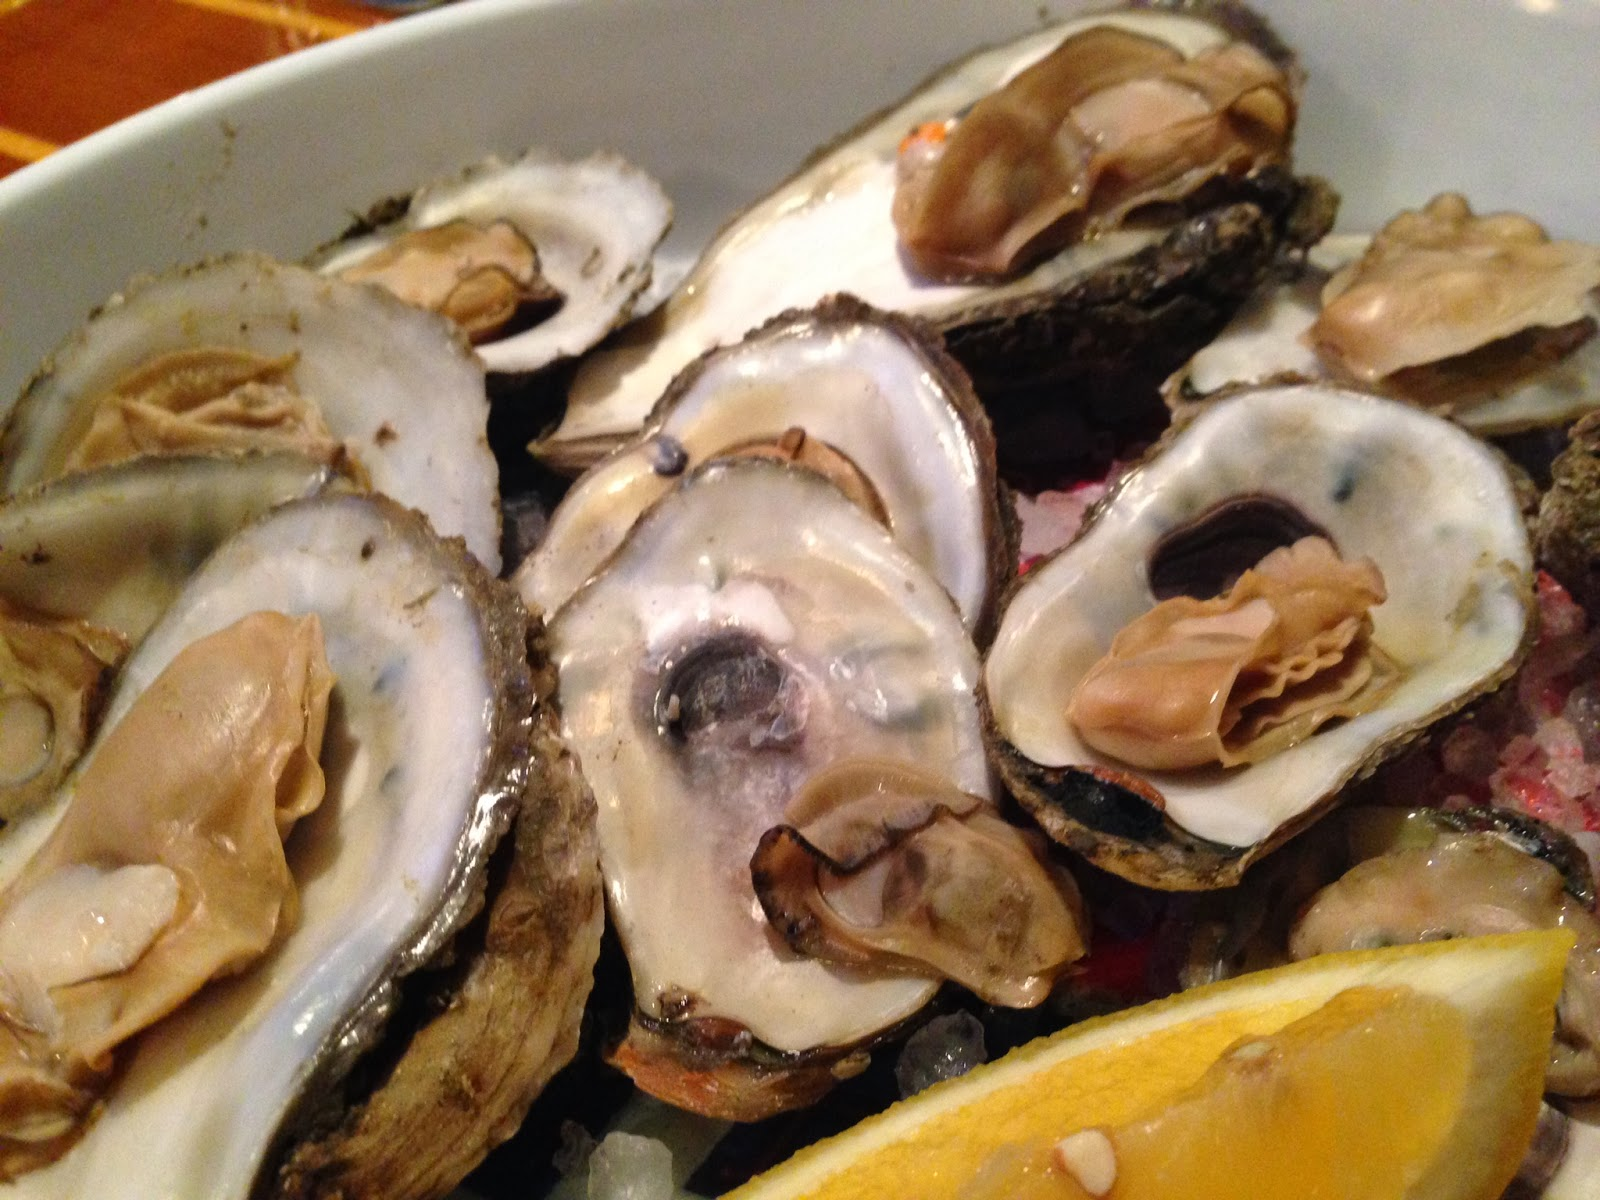 Live oysters with pearls inside - photo#14